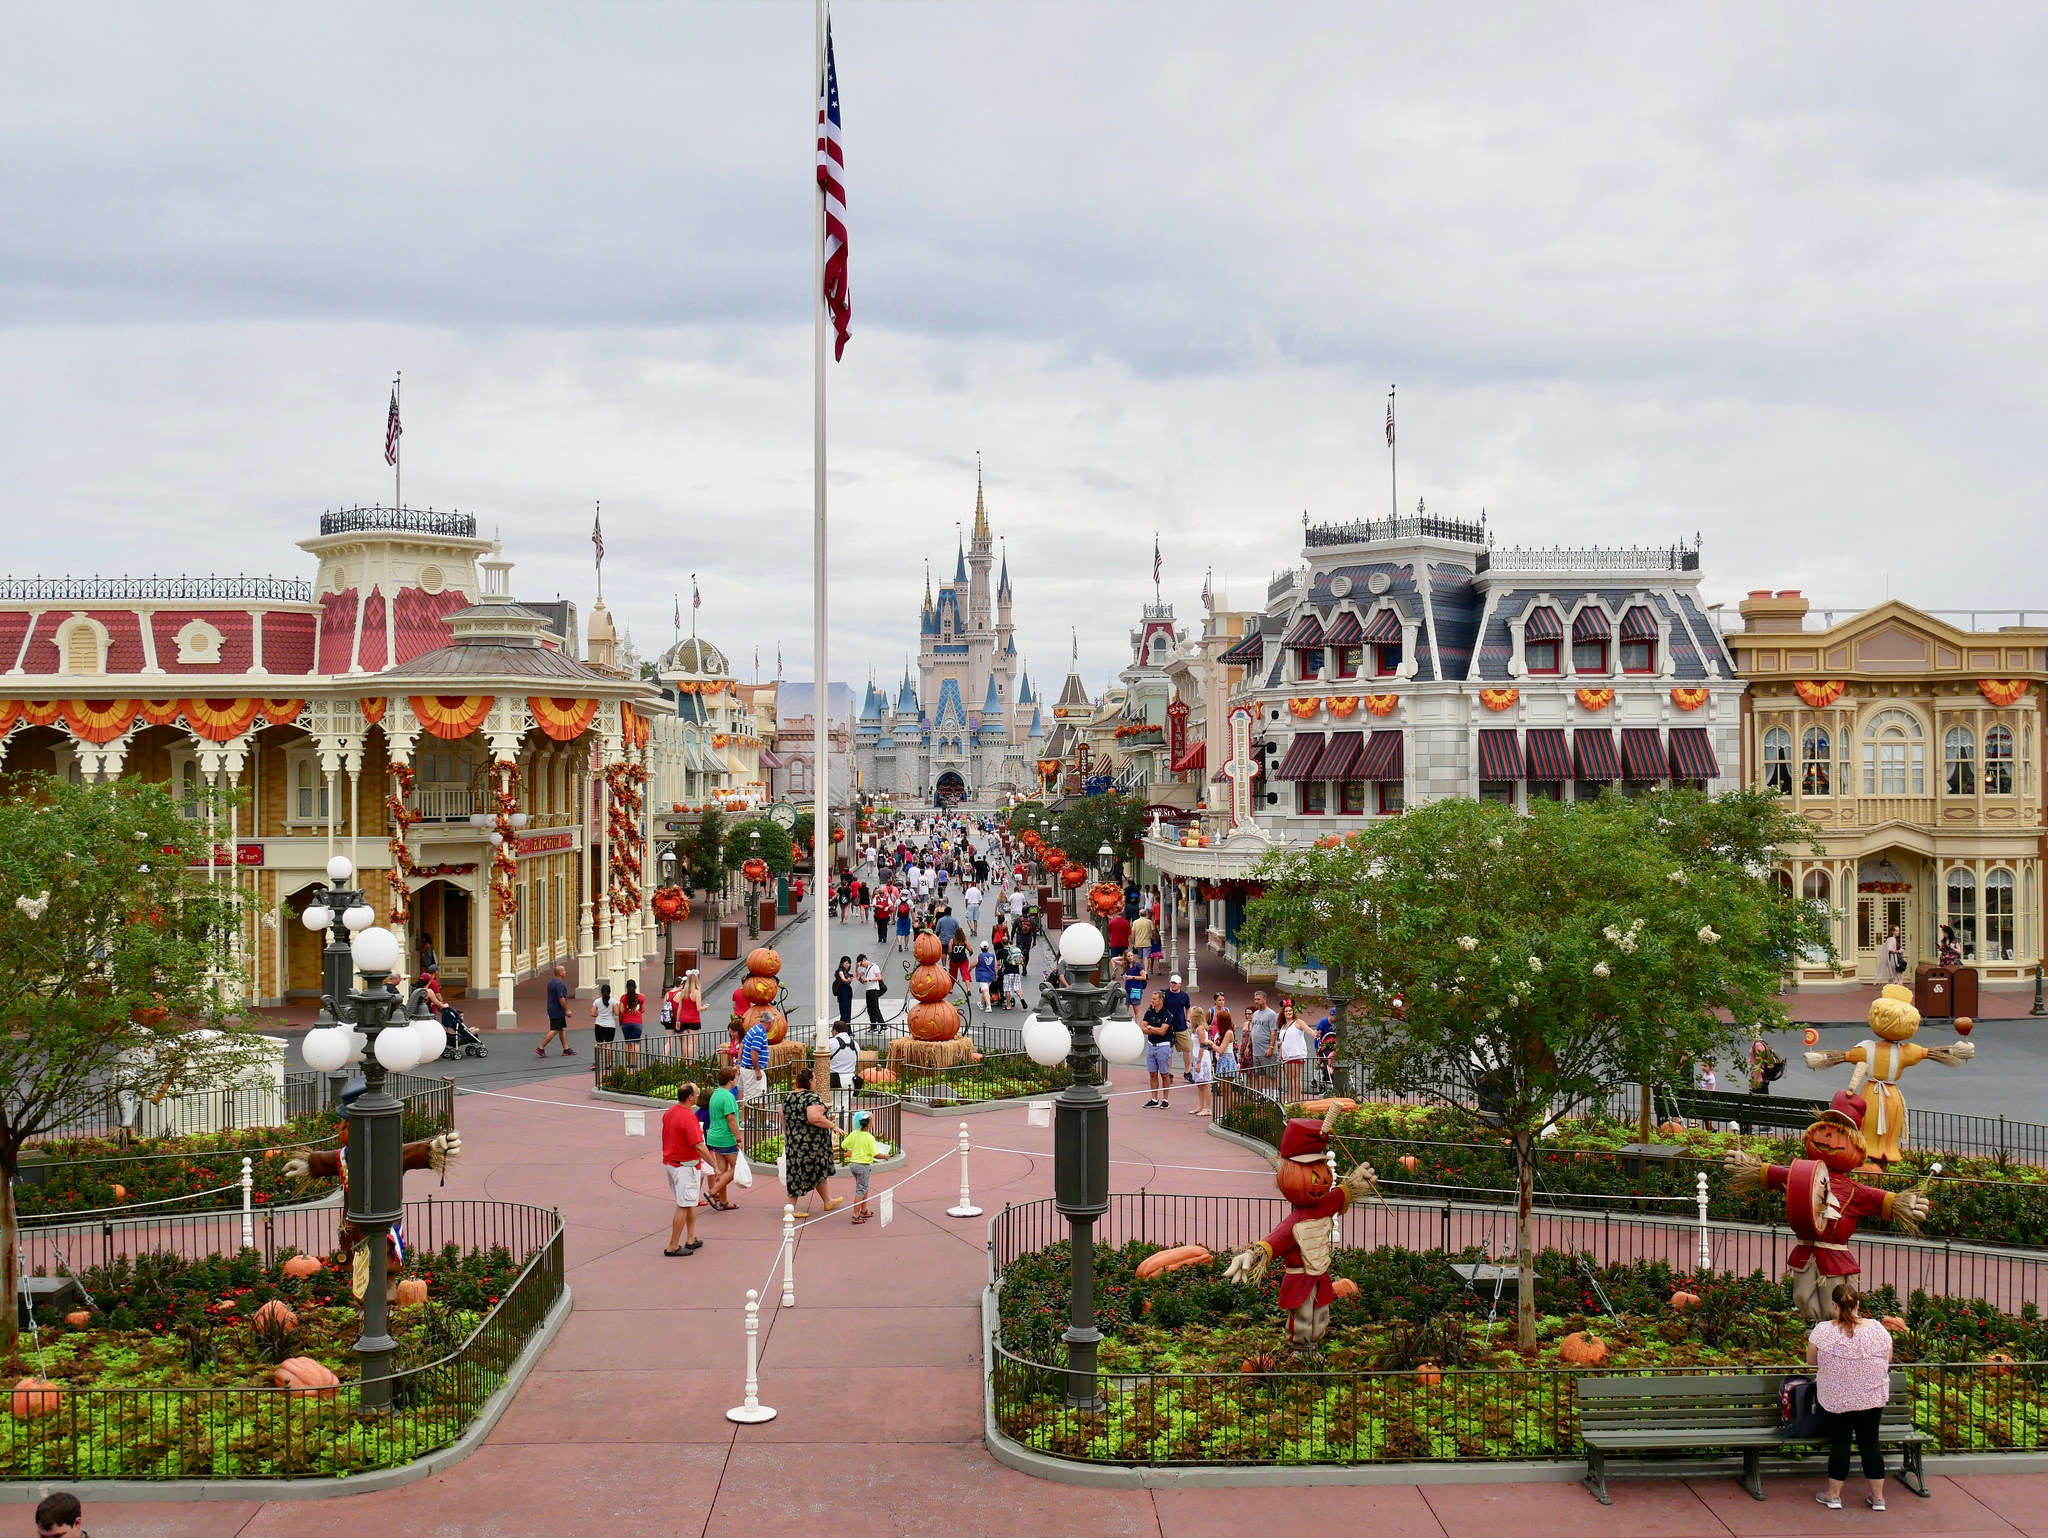 Here's how much money Disney World *probably* lost closing down for two days